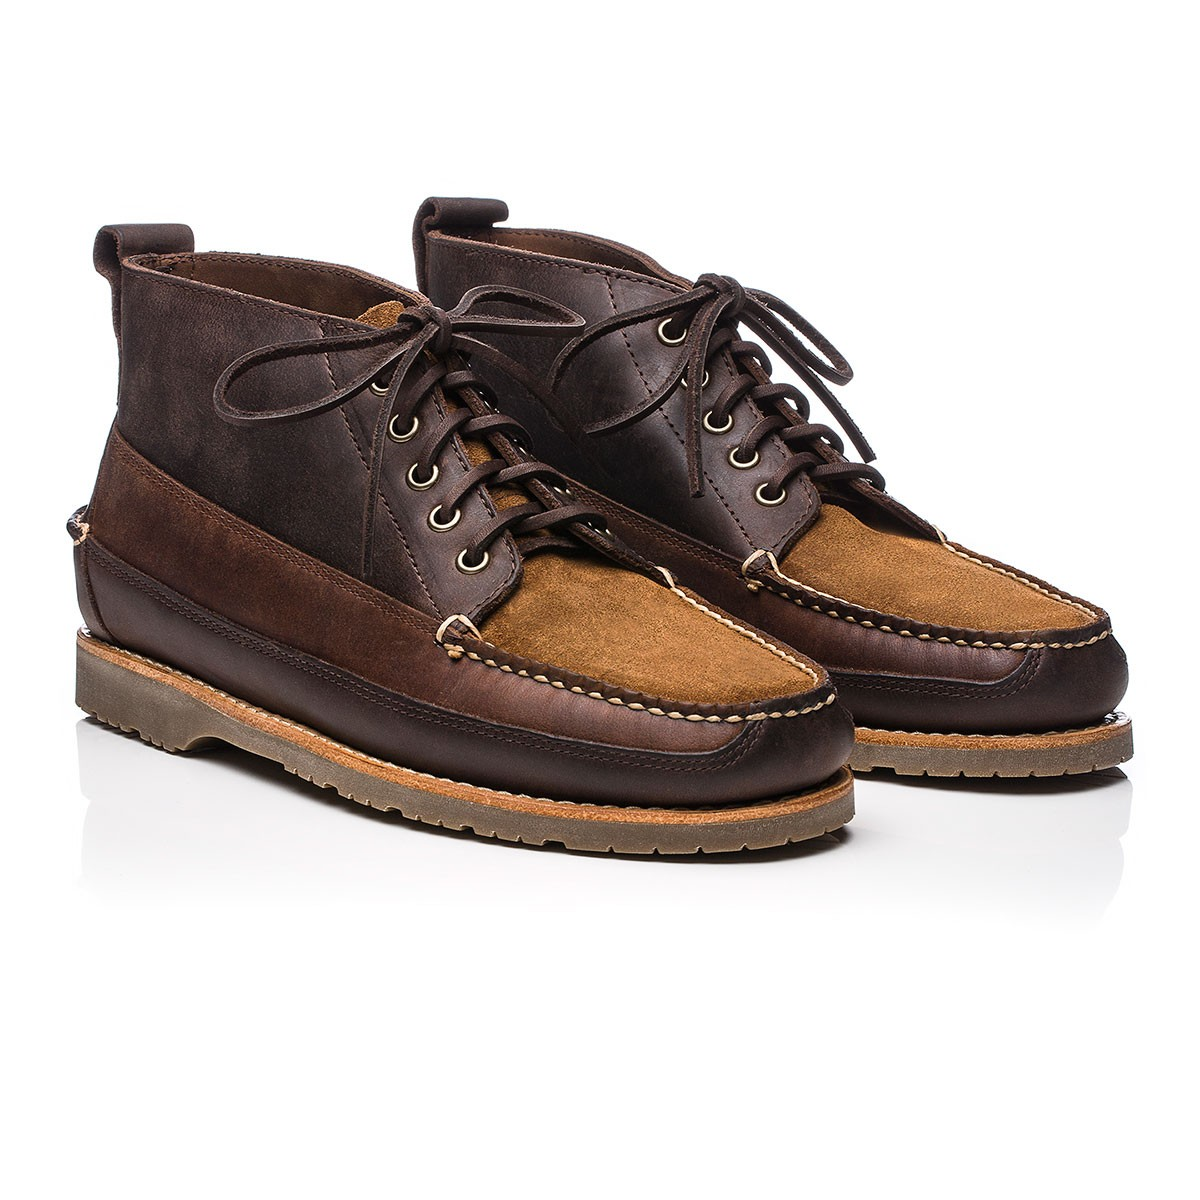 G.H. Bass & Co. Camp Moc II Ranger Mix Dark Brown Leather